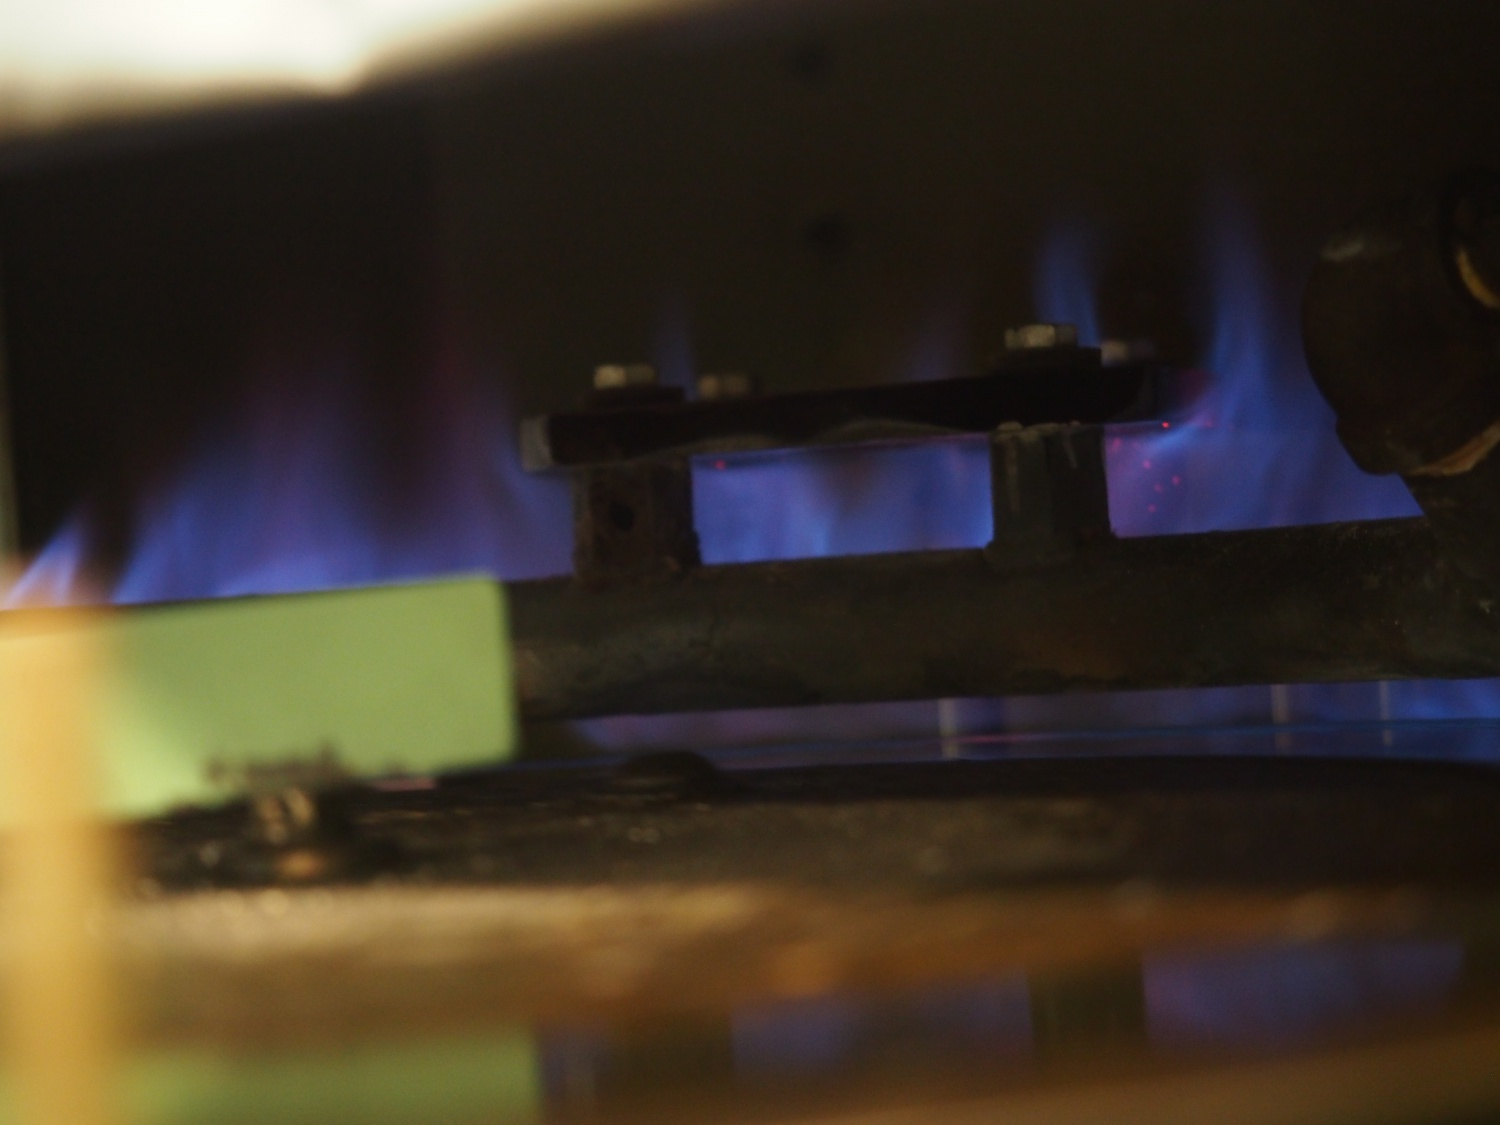 In this photo you get a better view of the gas flame heating the brass.